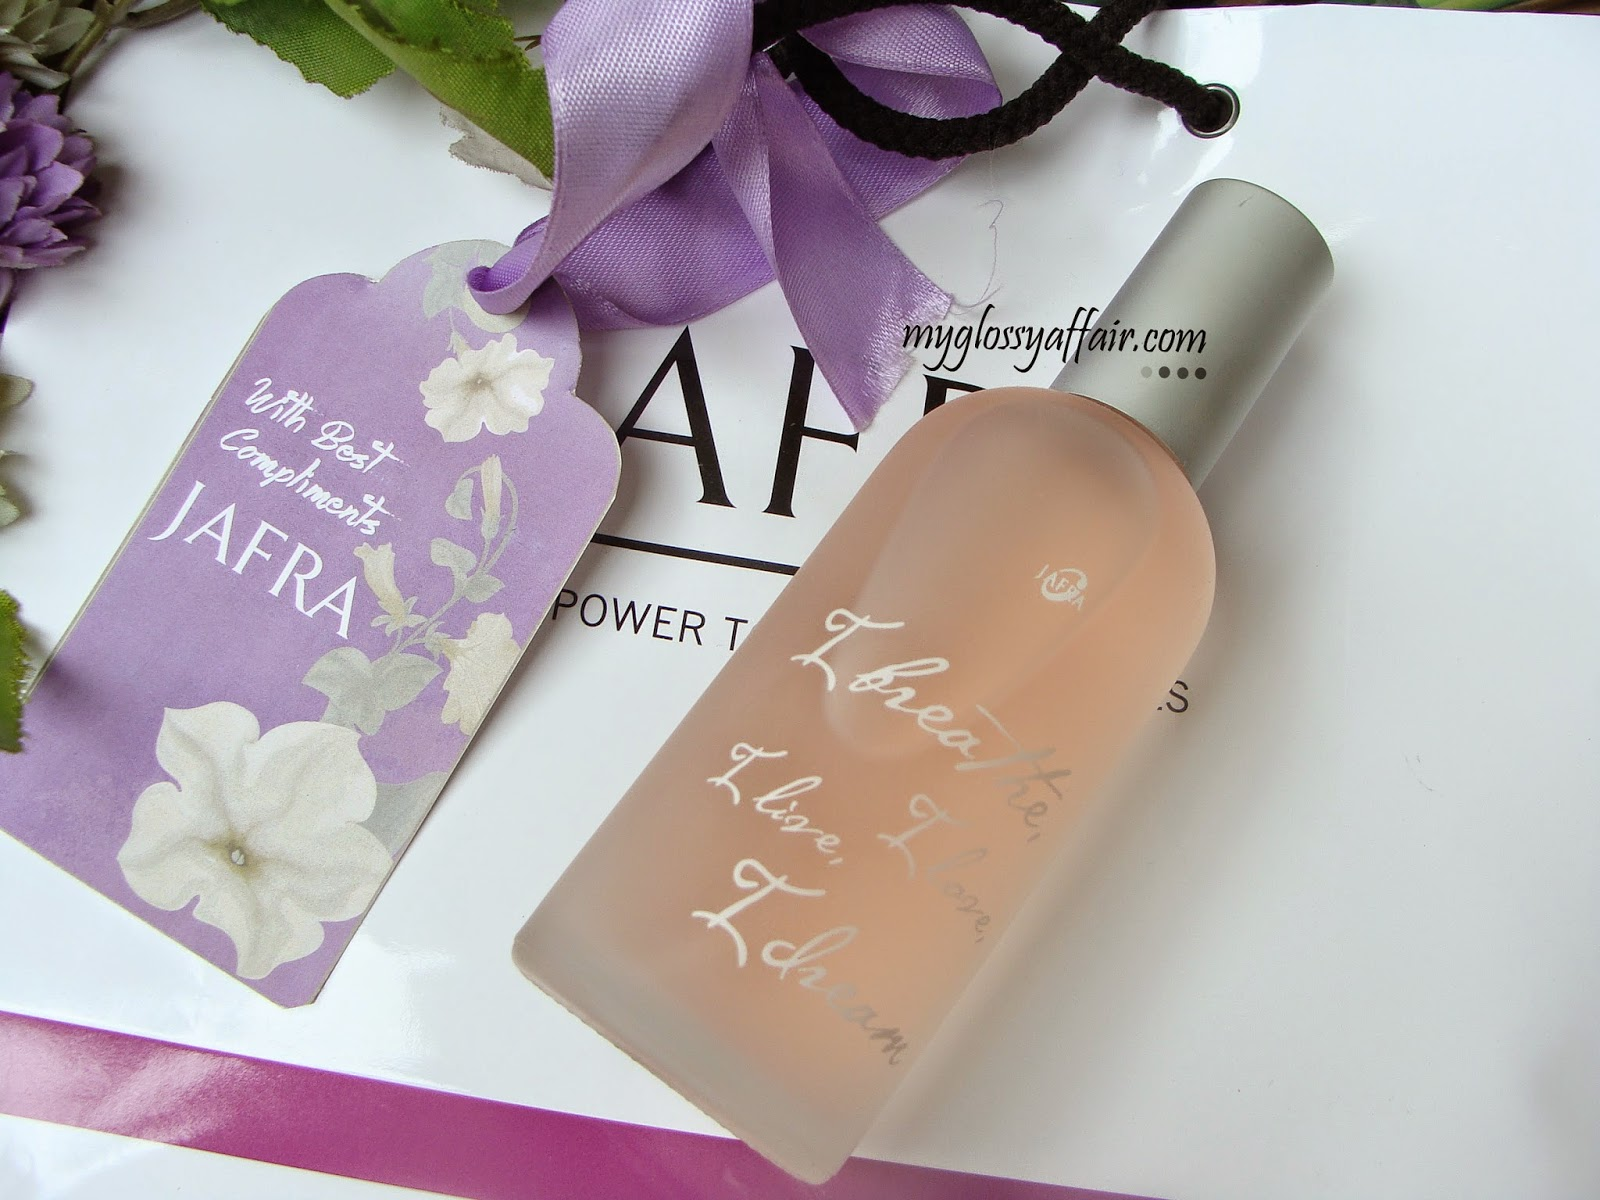 Jafra Fragrance - I Breathe, I Love, I Live, I Dream - Review